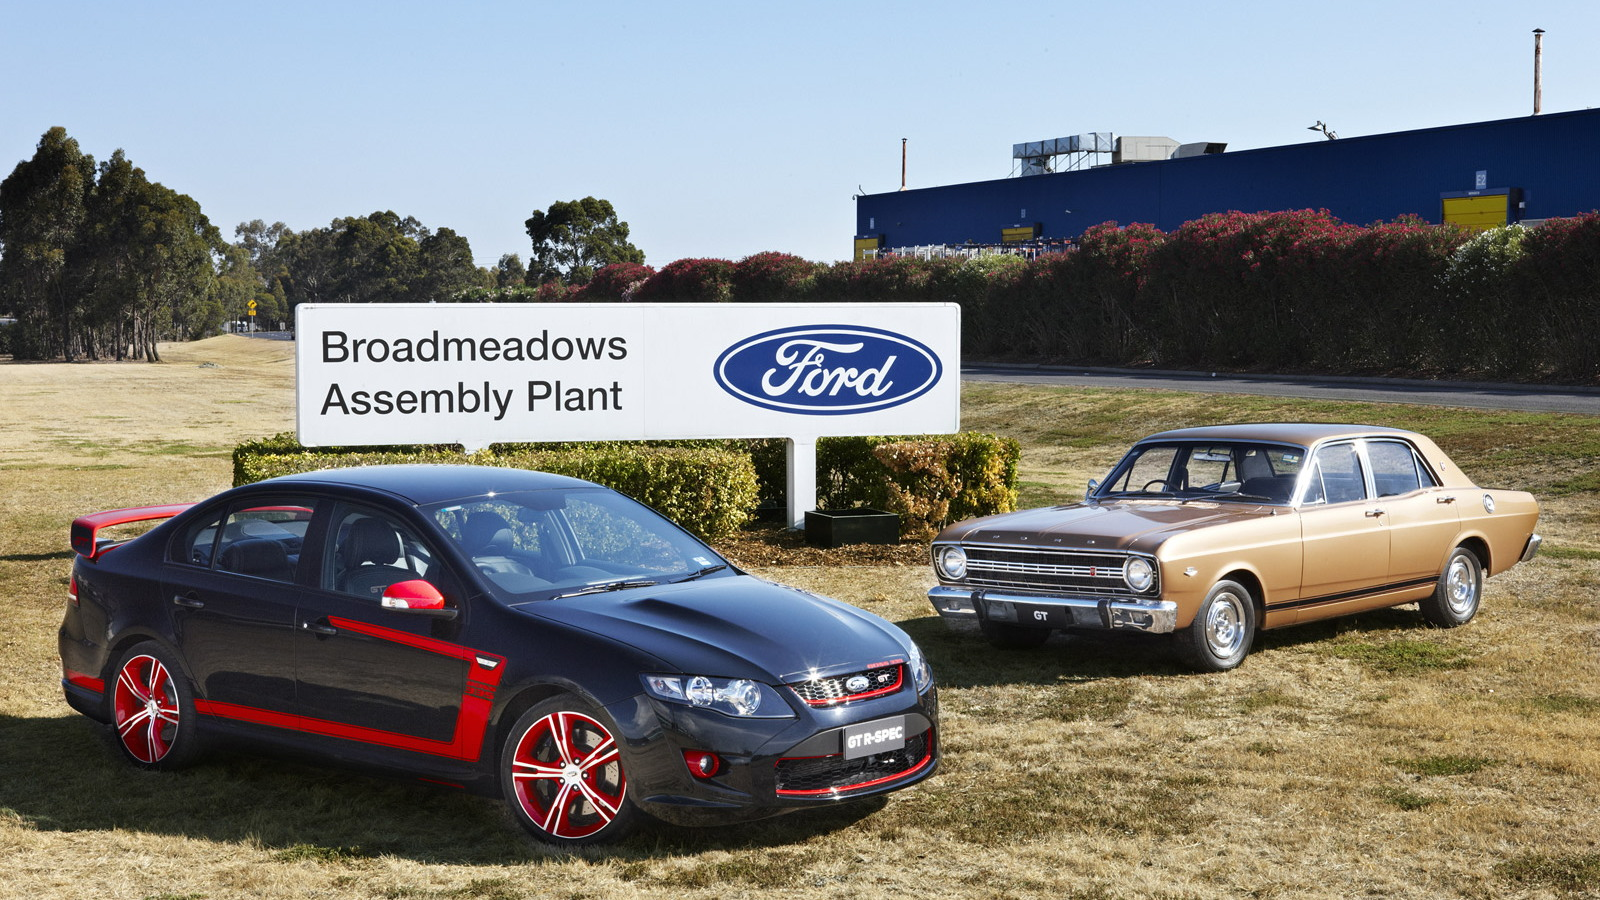 Ford starts production of FPV Falcon sedans at its own plant